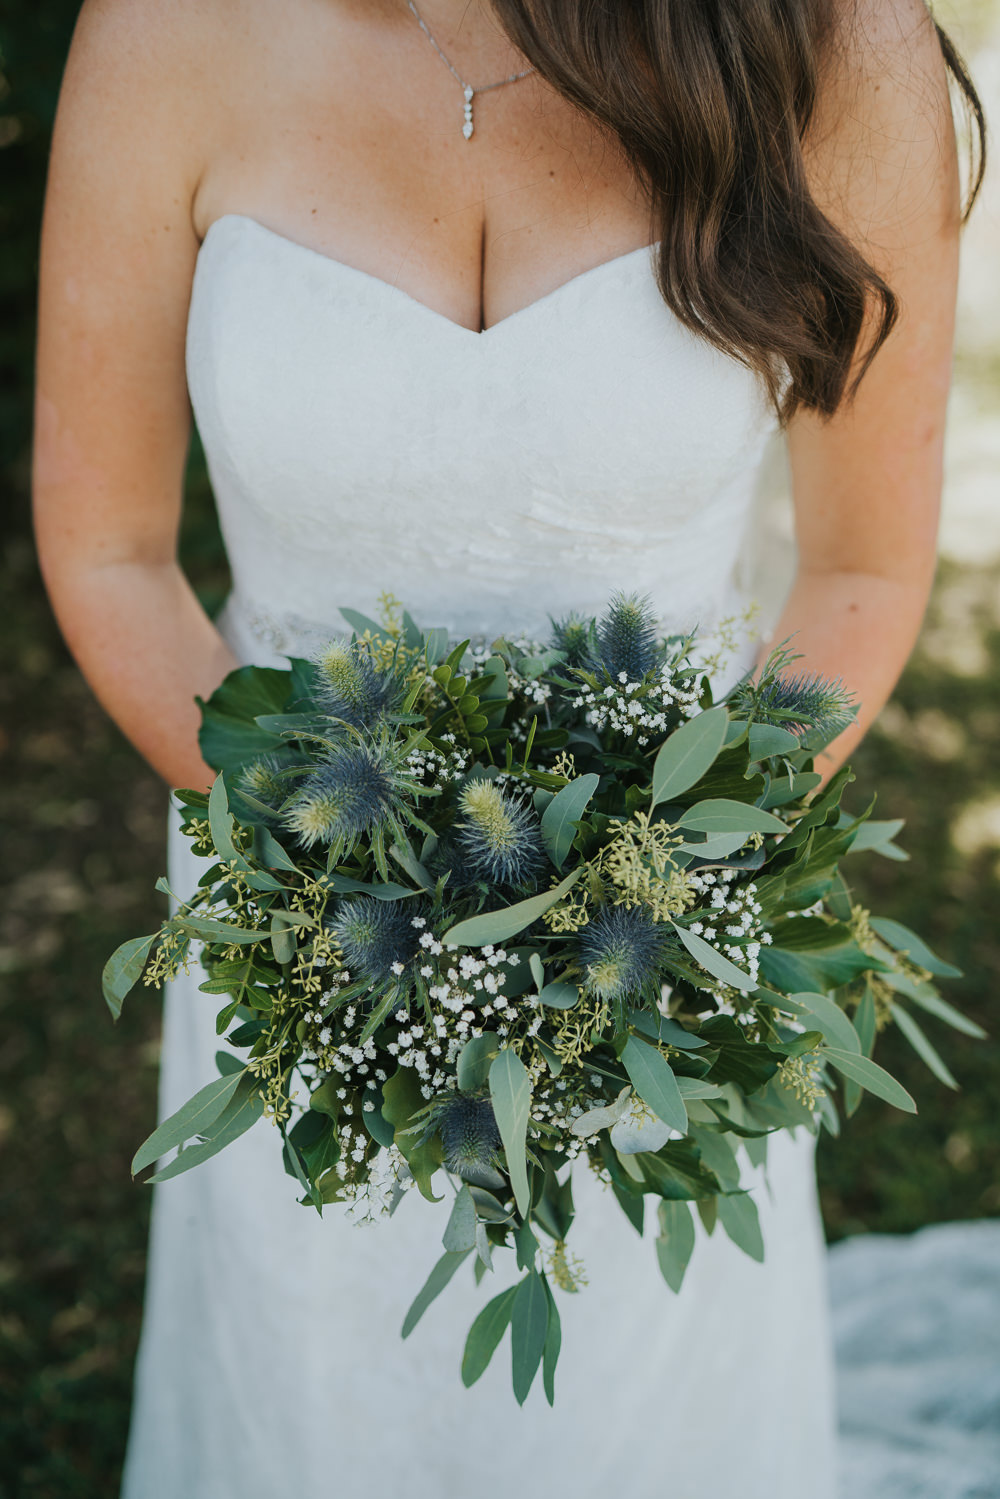 Intimate Outdoor Natural Relaxed Laid Back Summer Bride Sweetheart Dress Greenery Foliage Bouquet | Prested Hall Wedding Grace Elizabeth Photography